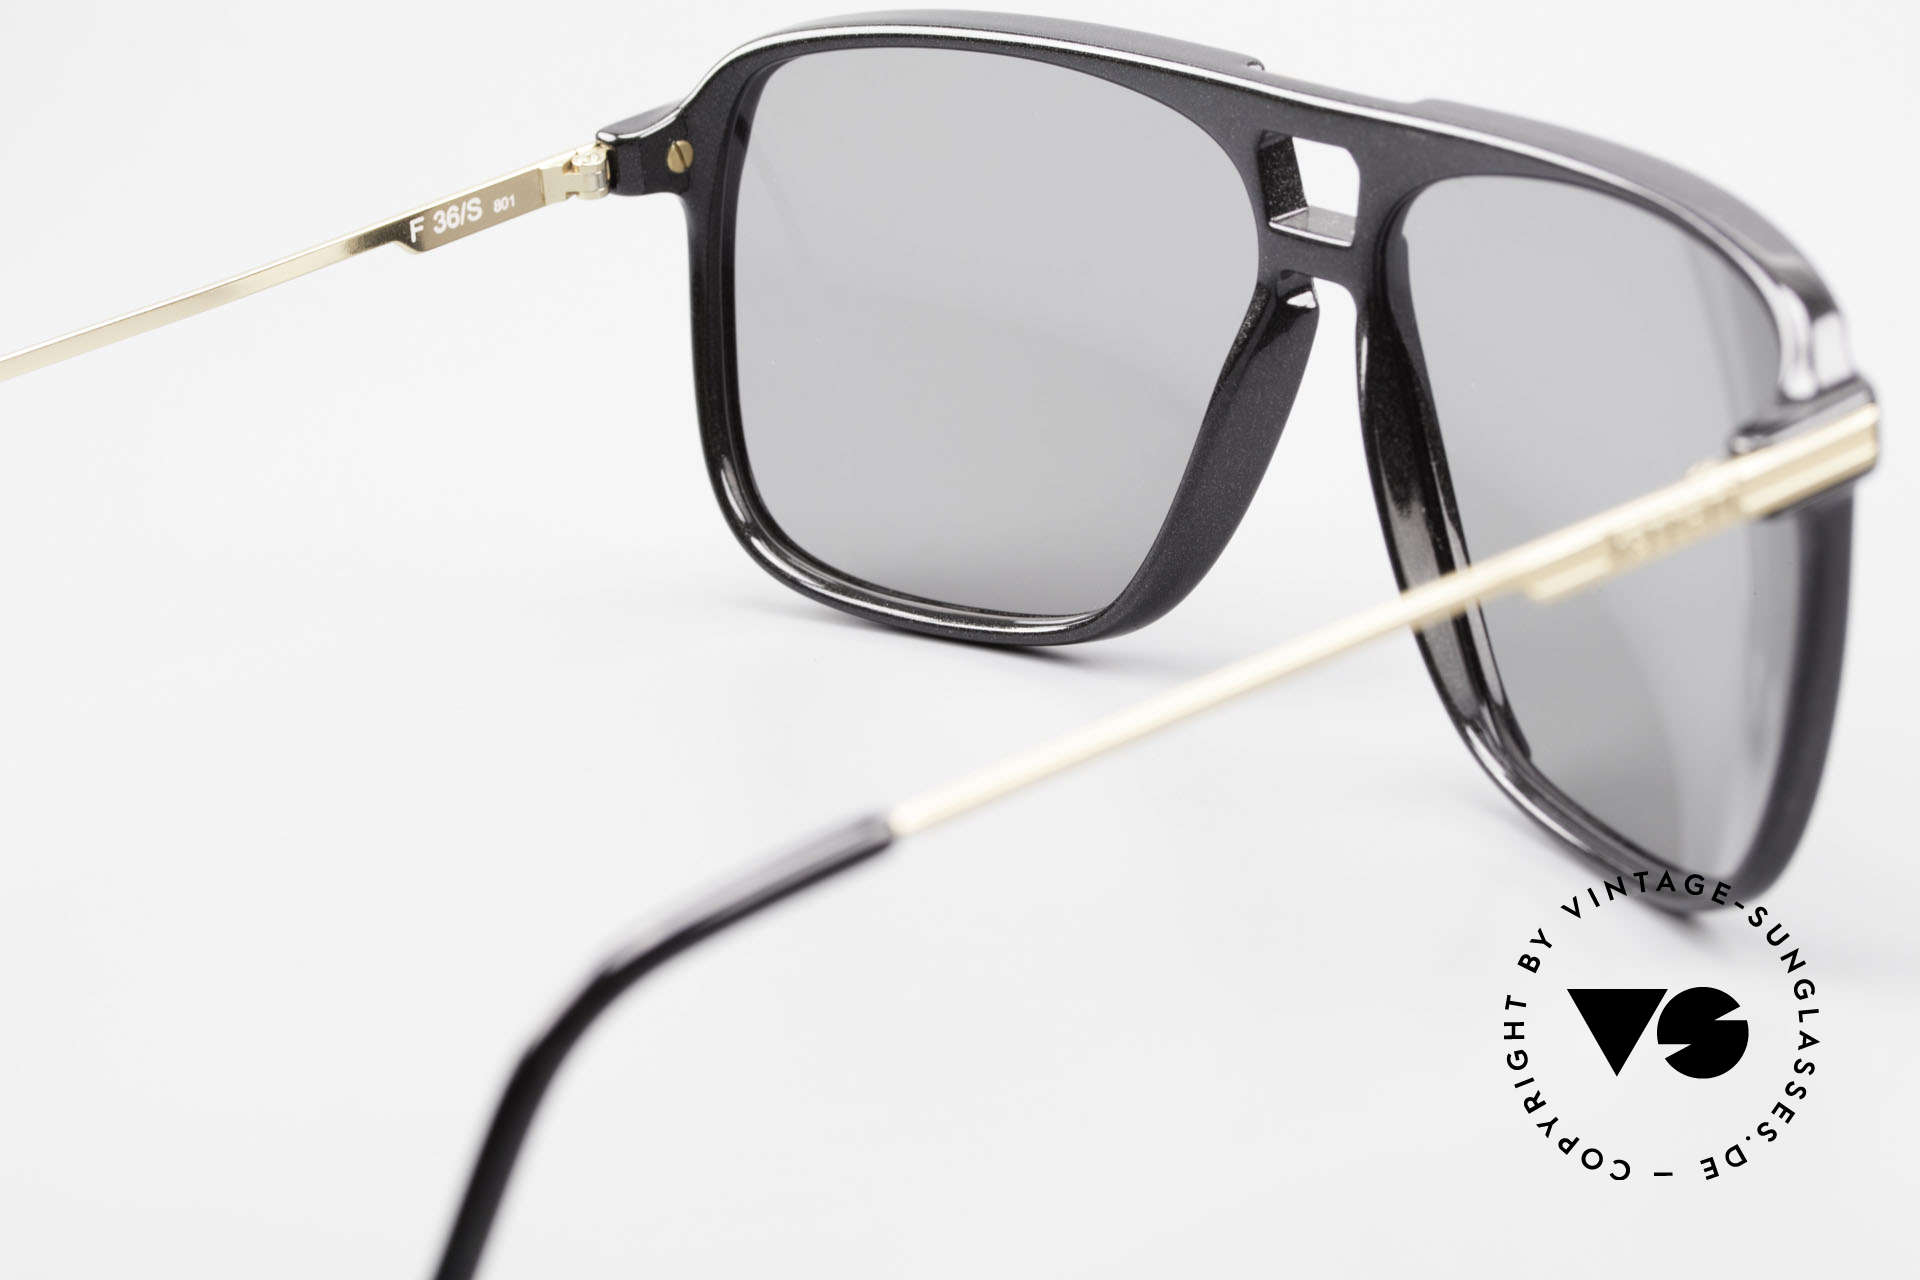 Ferrari F36/S Men's Carbon Sunglasses 90's, NO RETRO SHADES; but an old 1990's vintage rarity, Made for Men